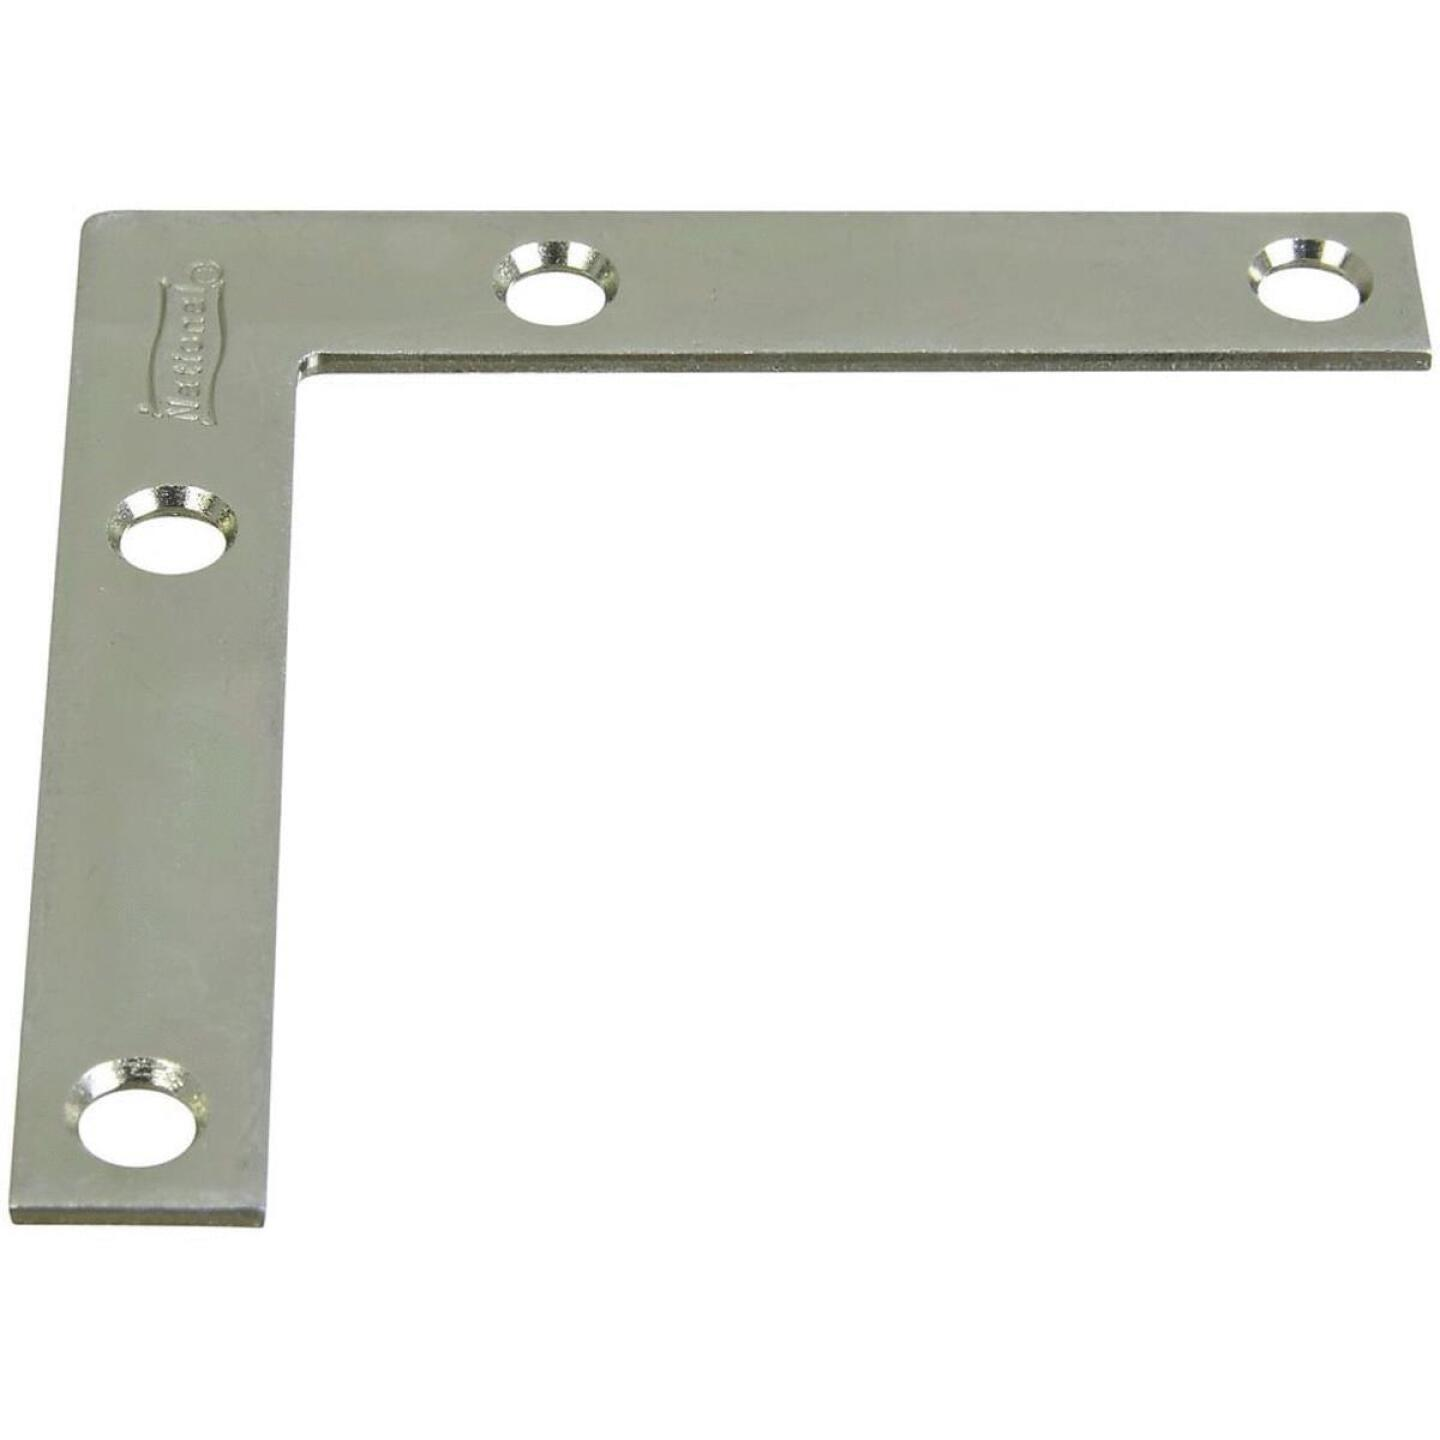 National Catalog 117 3 In. x 1/2 In. Zinc Flat Corner Iron Image 1